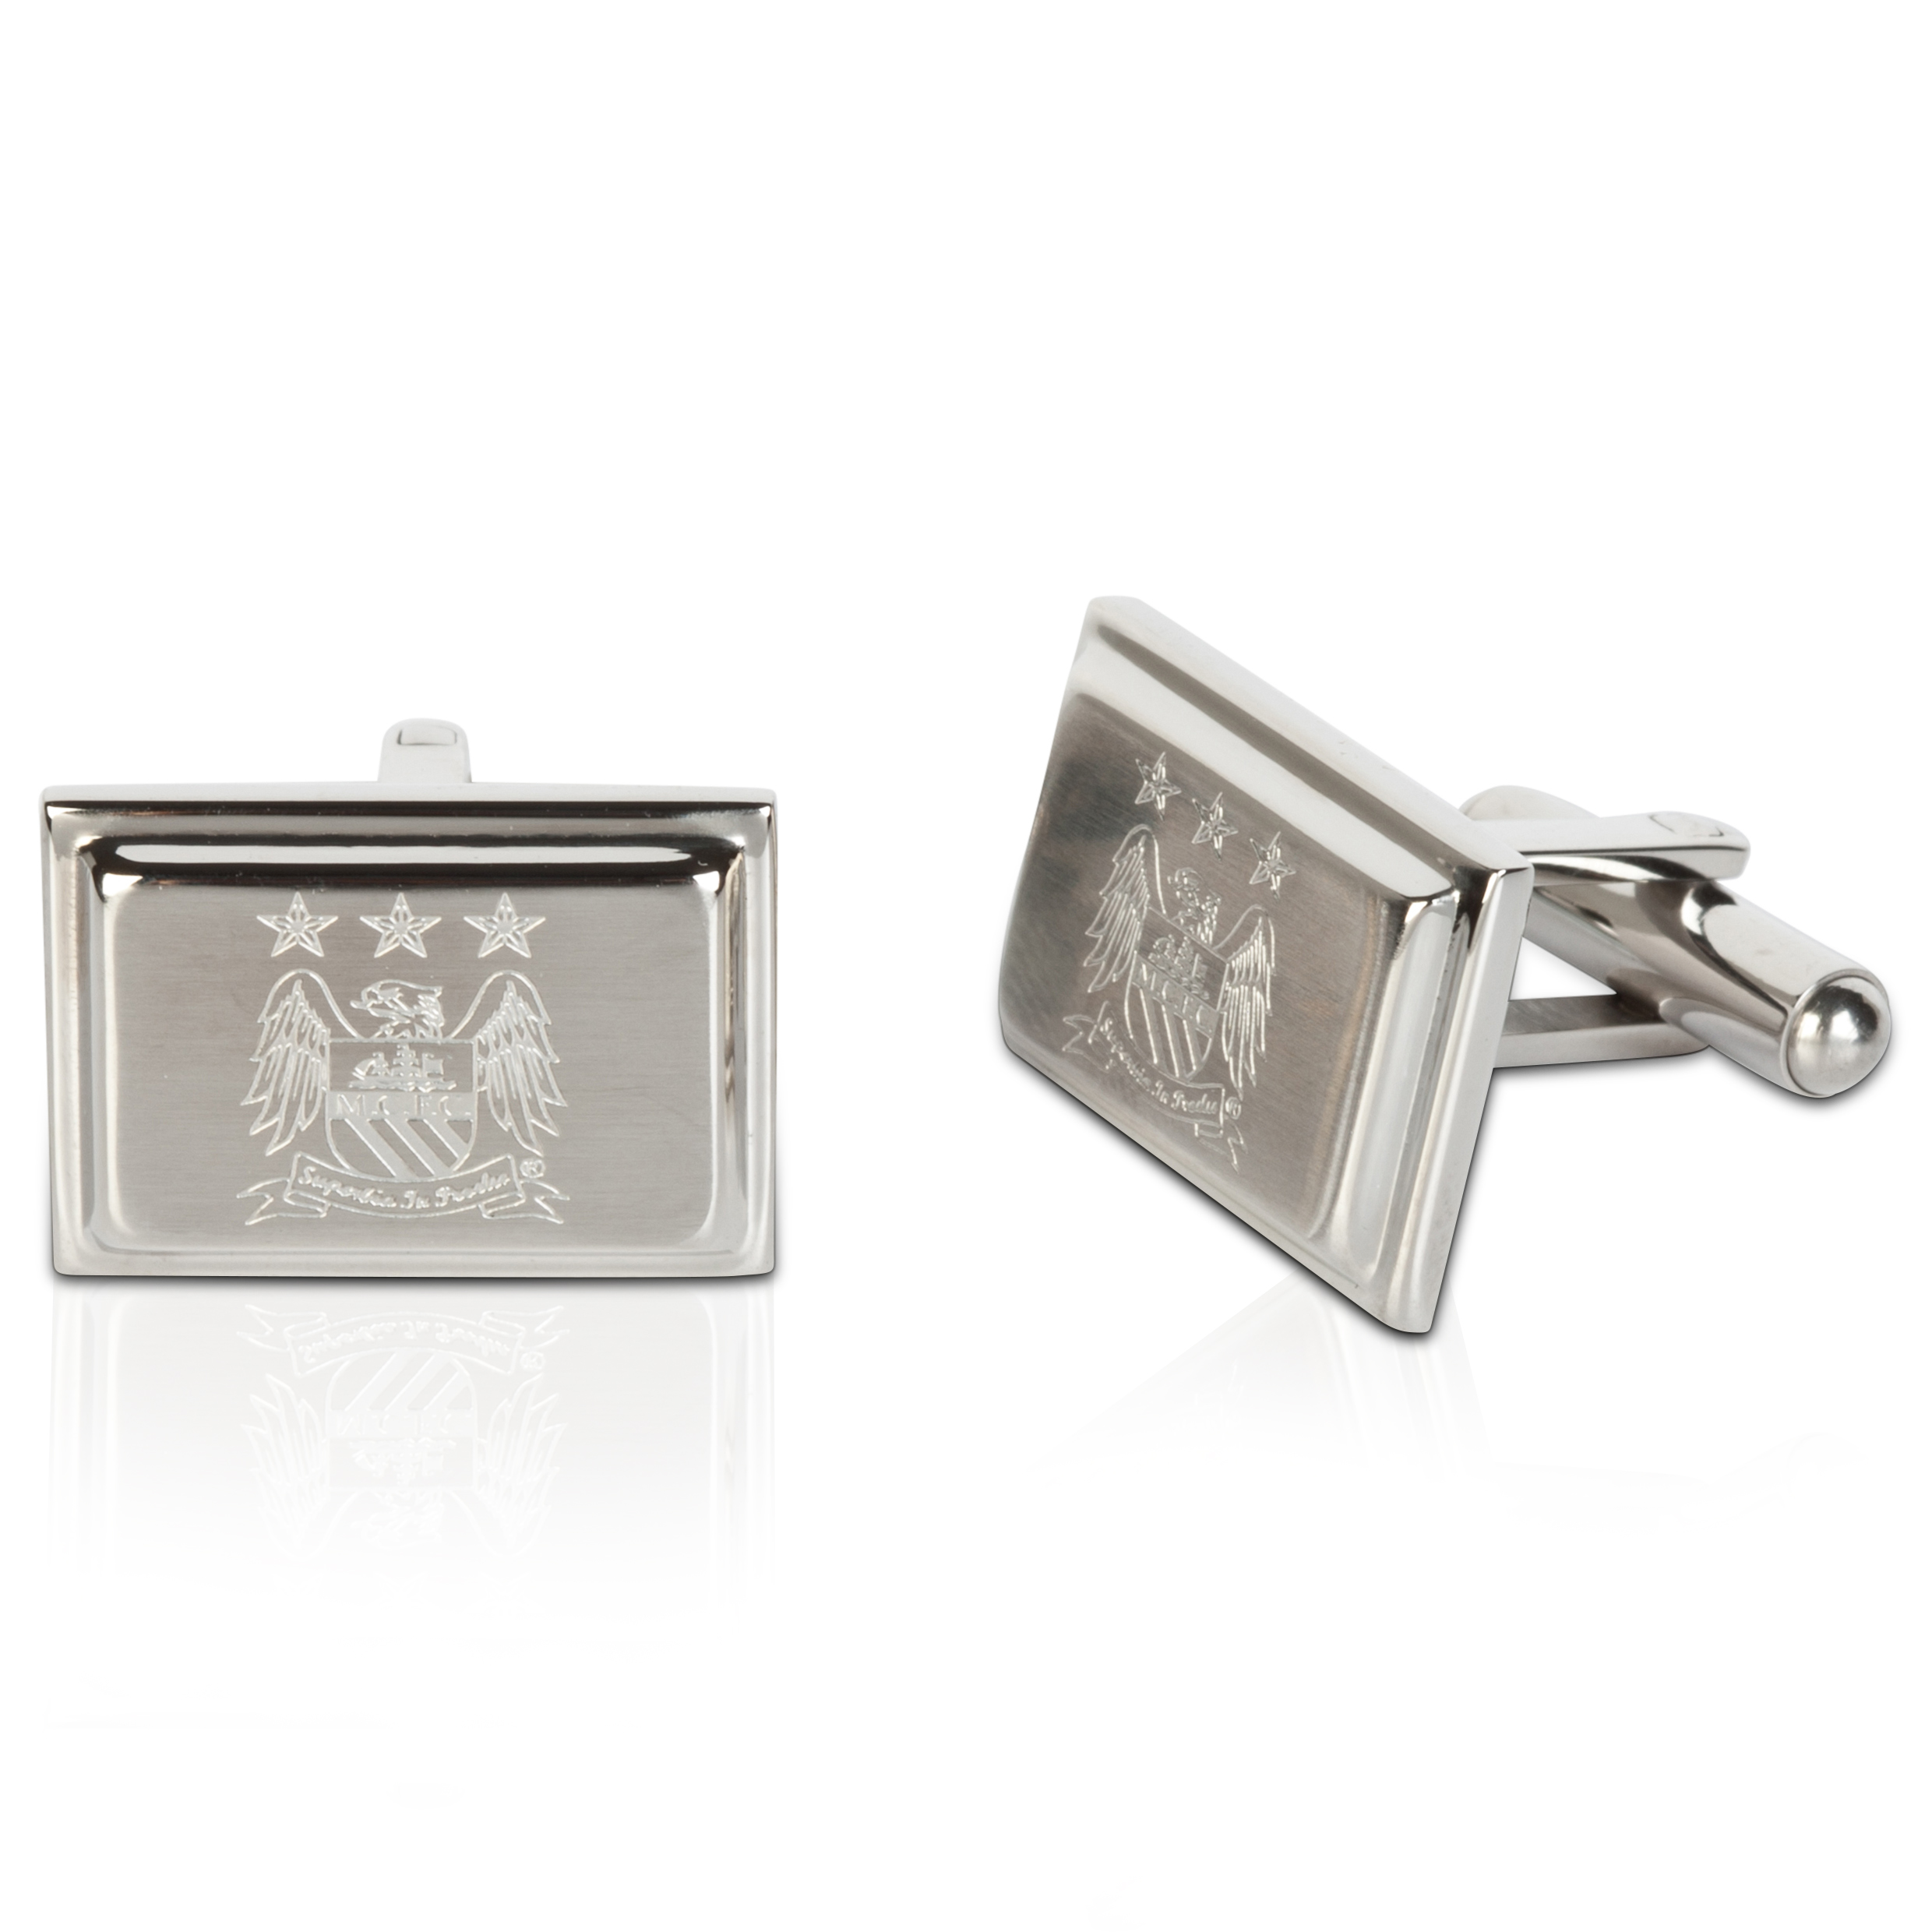 Manchester City Stainless Steel Rectangular Cufflinks